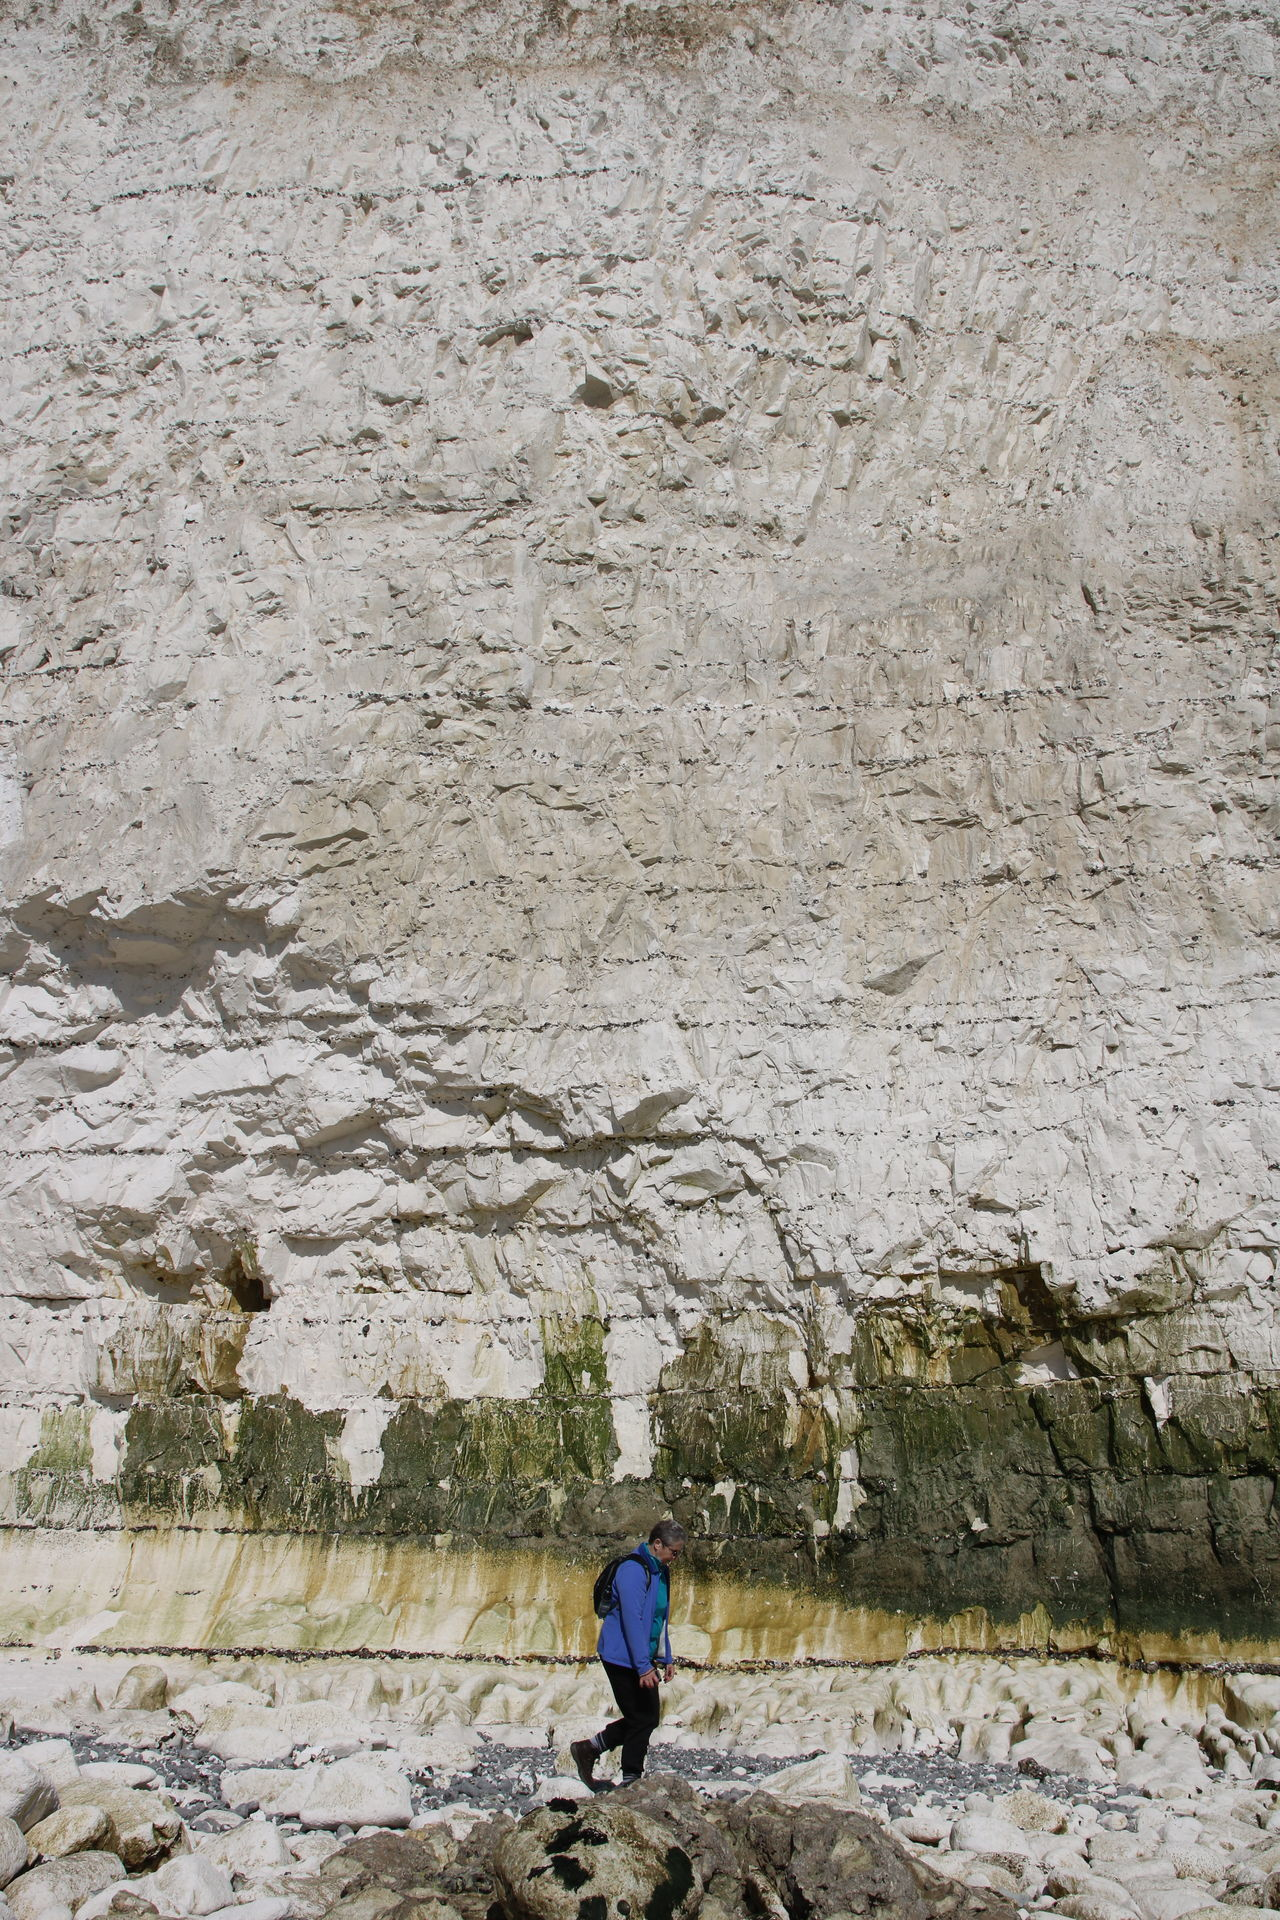 Adult Adventure Beach Walk Beauty In Nature Birling Gap Chalk Cliffs Day Eastbourne England Full Length Hiking Nature One Person Outdoors People Real People Seven Sisters Sussex Sussex Coast Walking Water